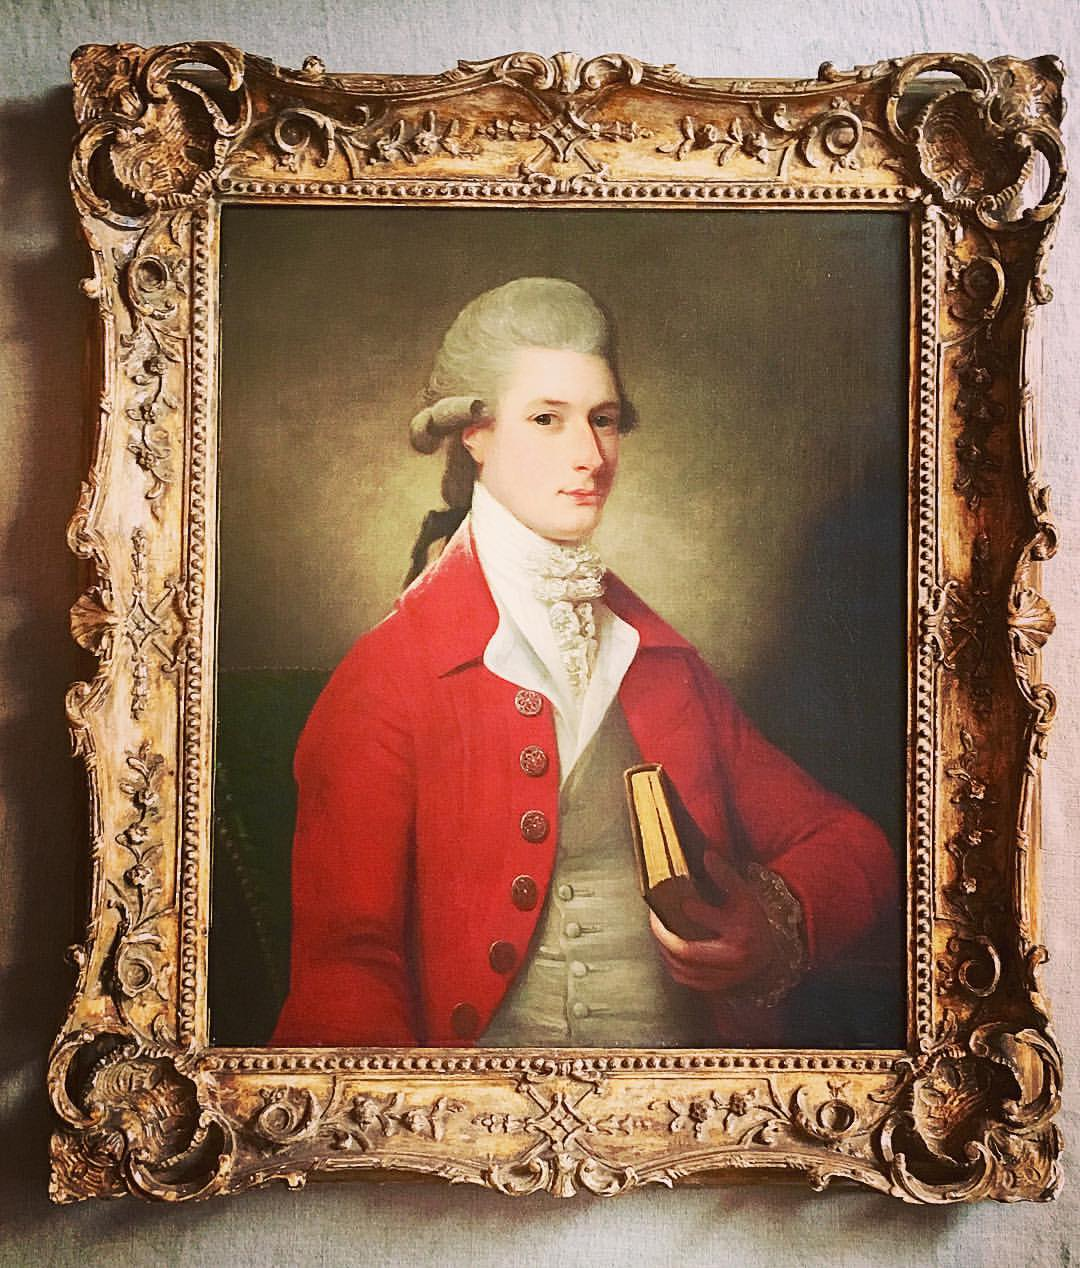 Portrait of an 18th-century gentleman by David Martin, £9,250 (now sold)